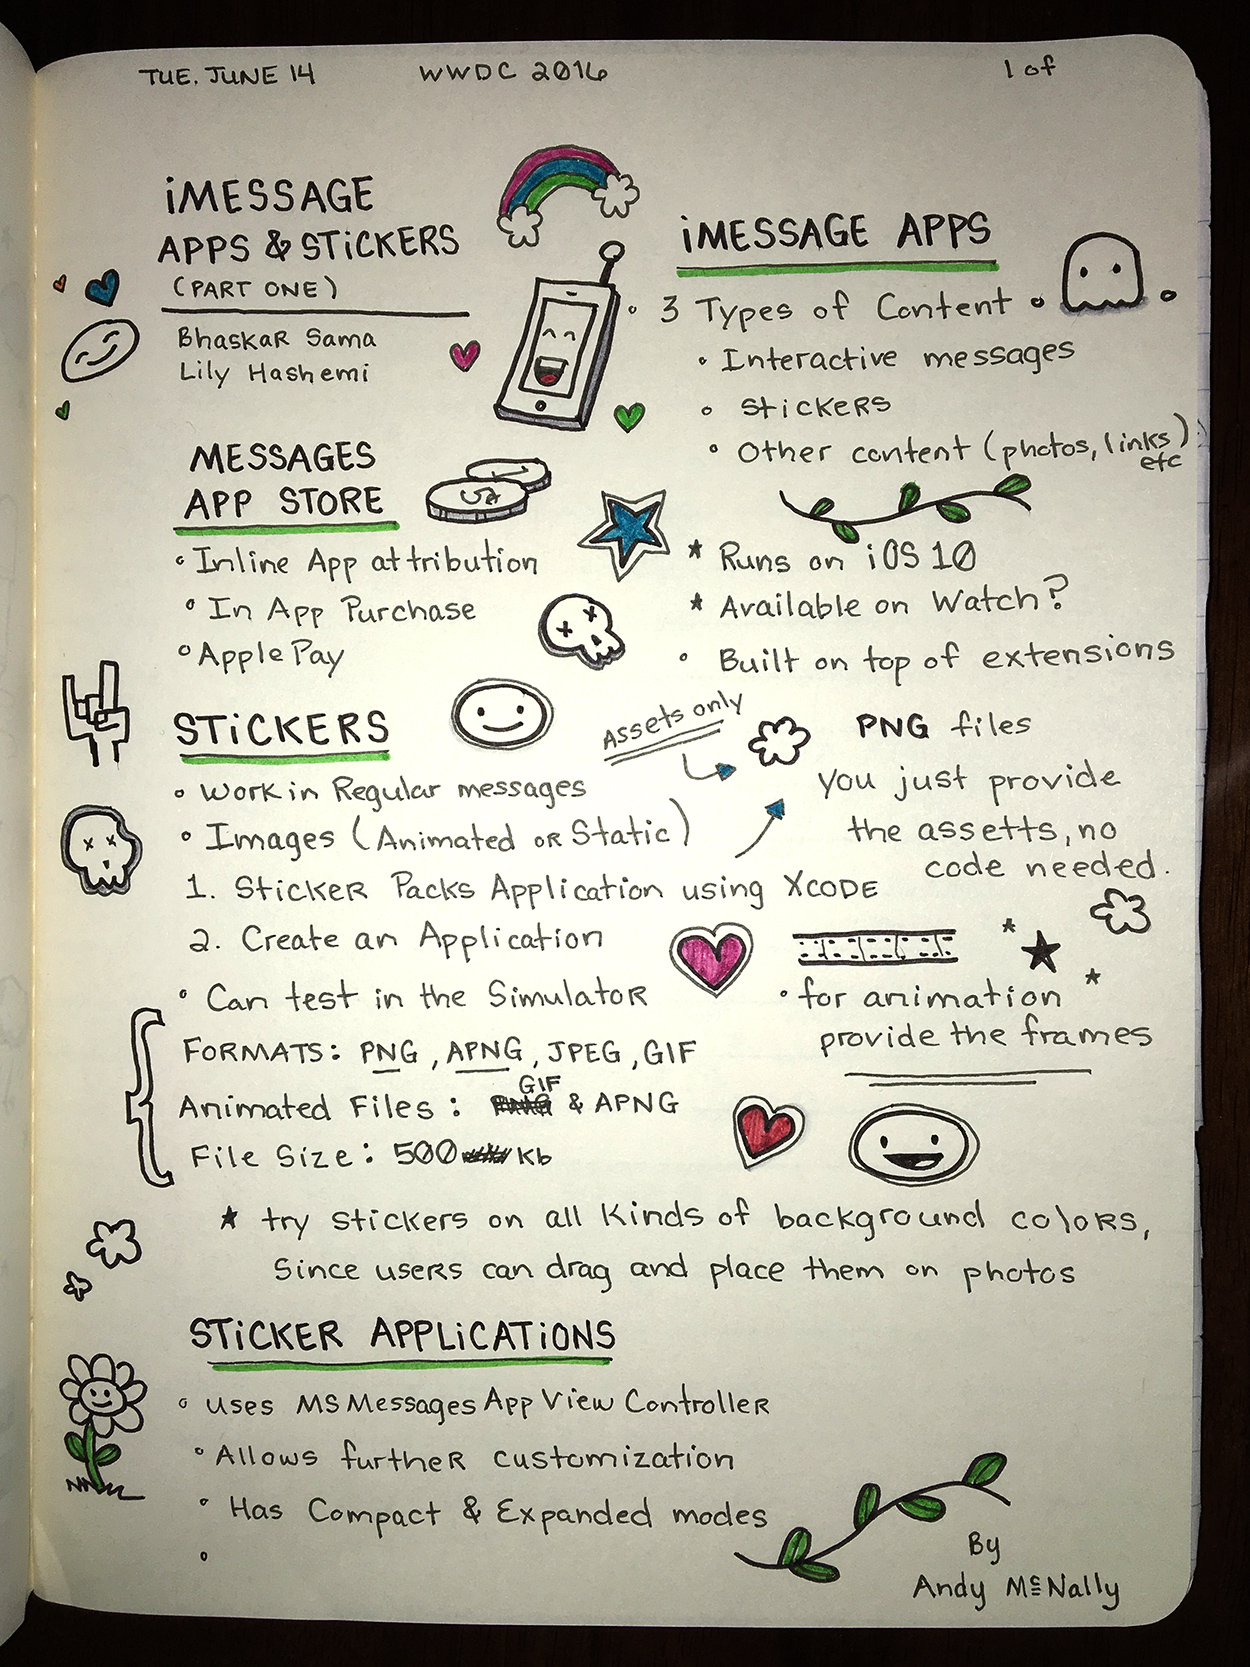 WWDC sketchnotes - iMessage Apps & Stickers